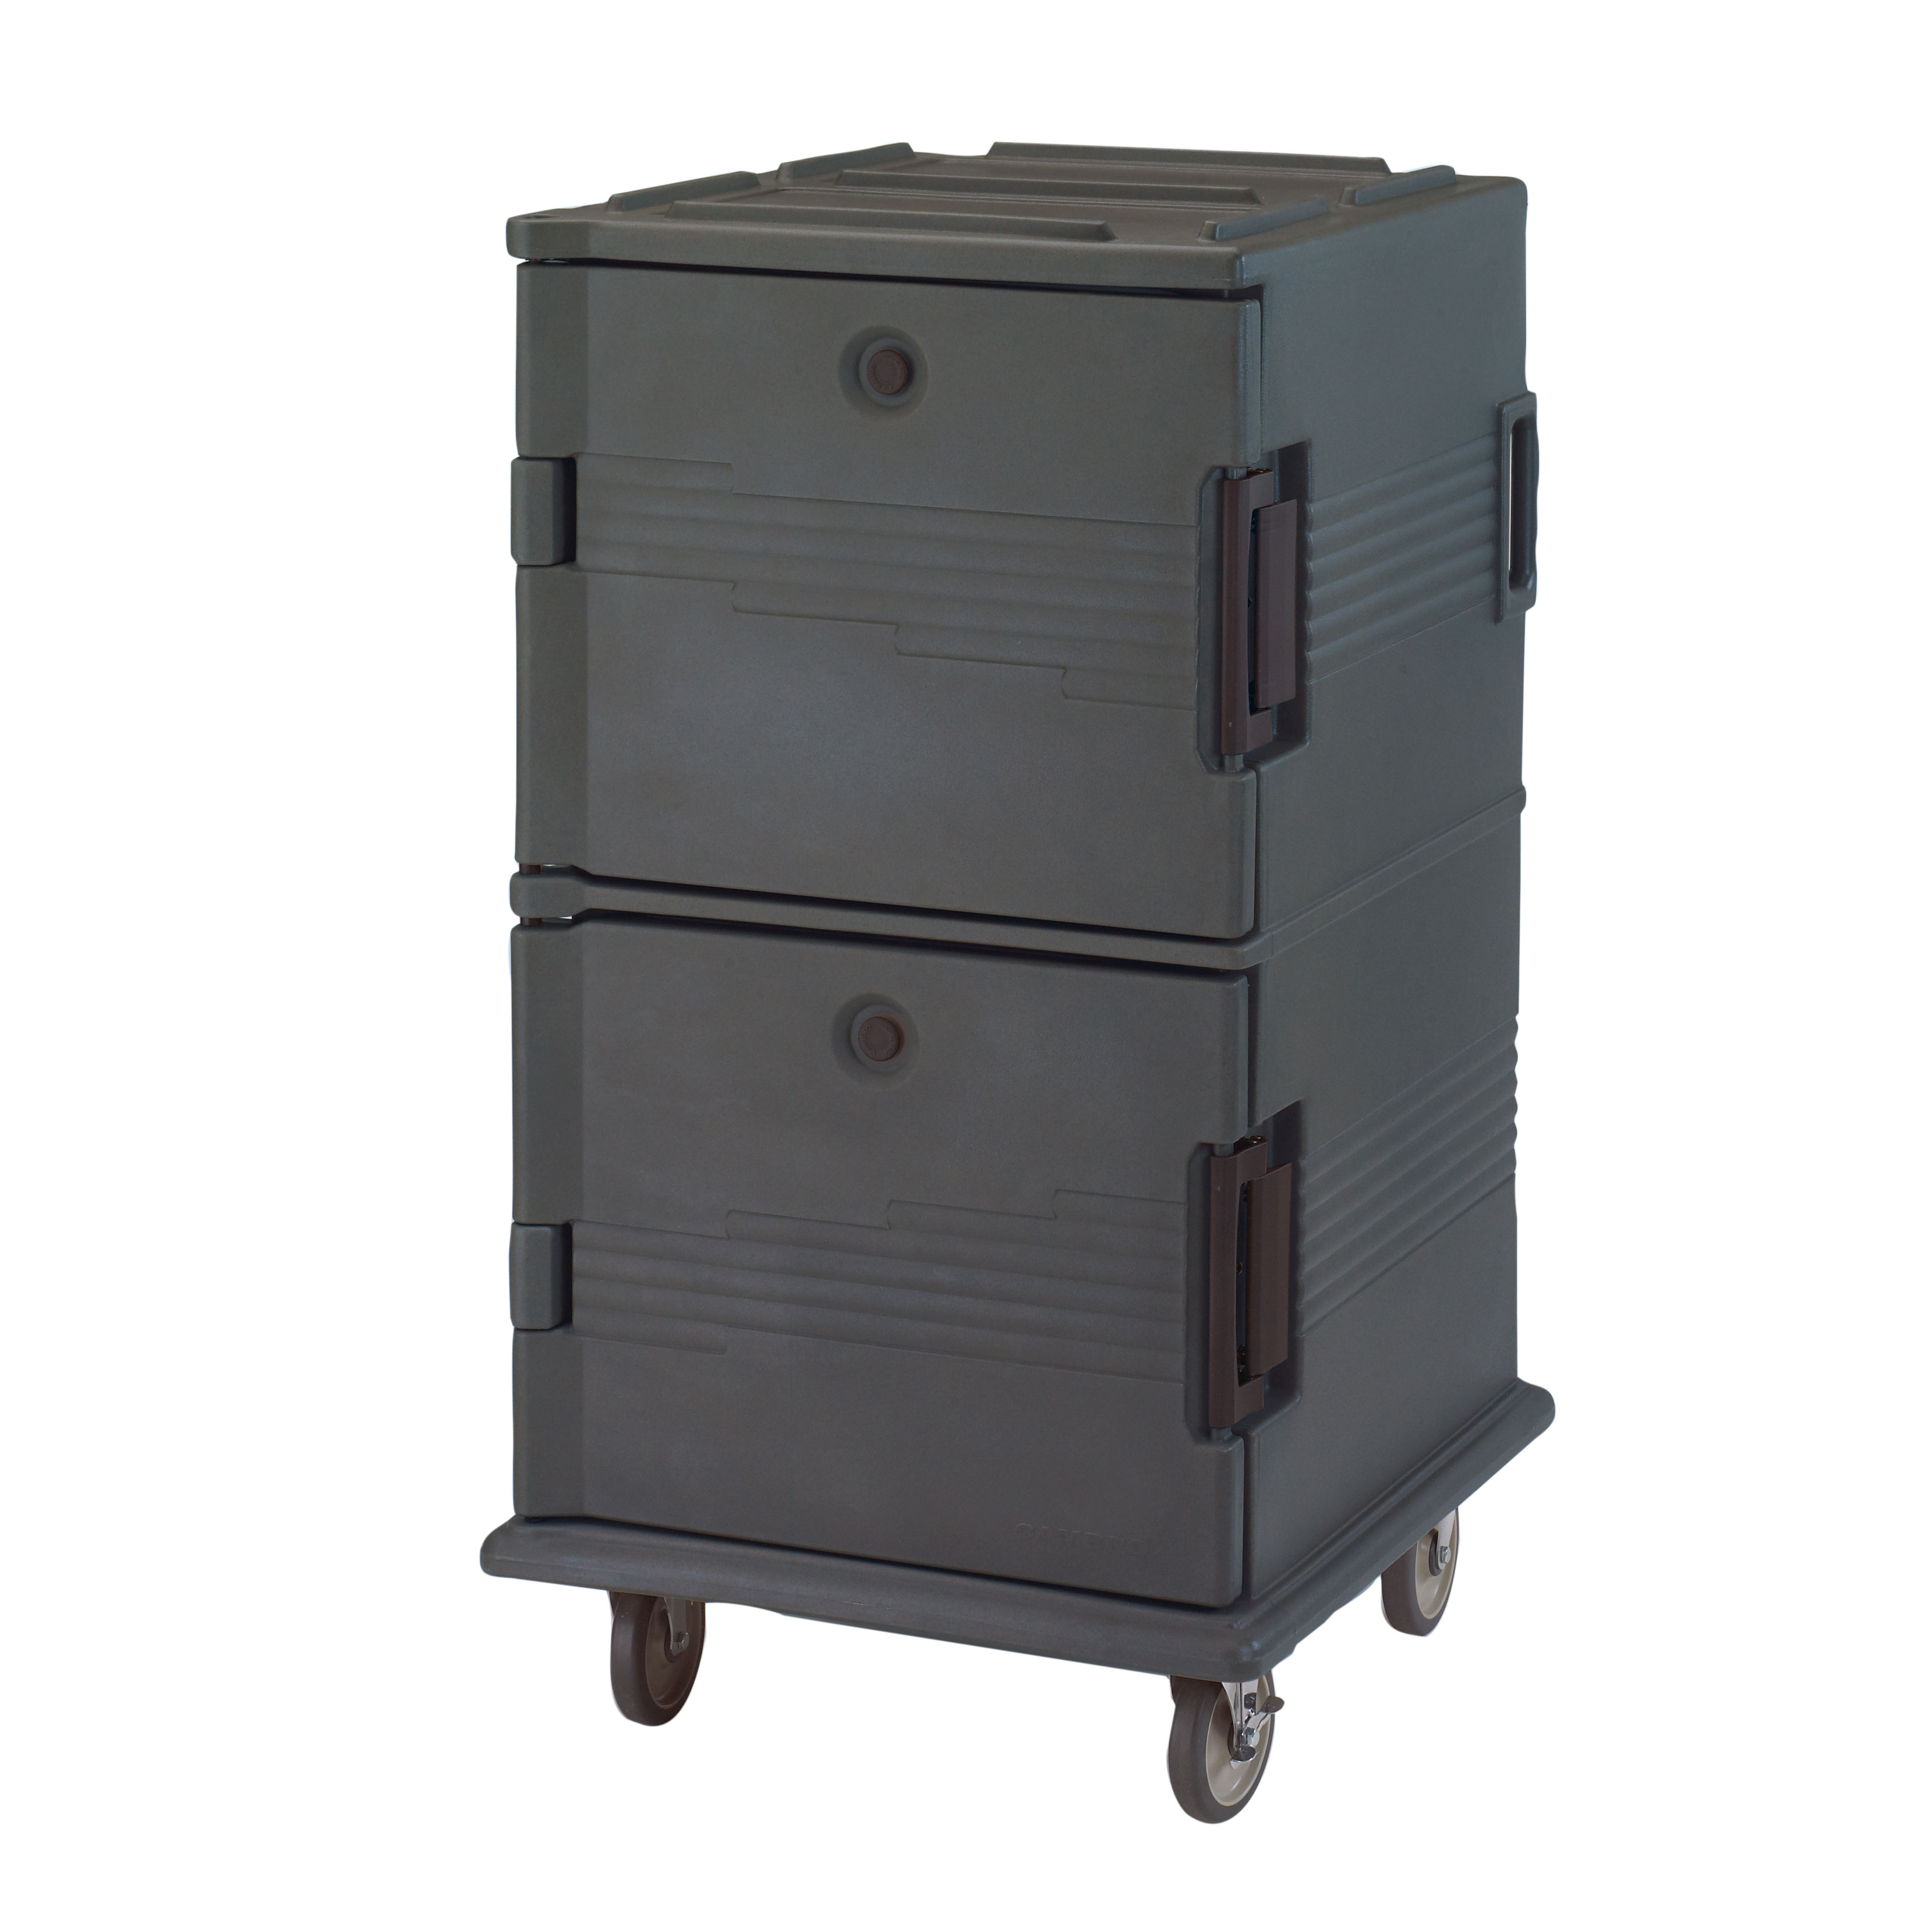 Cambro UPC1600SP110 proofing/holding cabinets